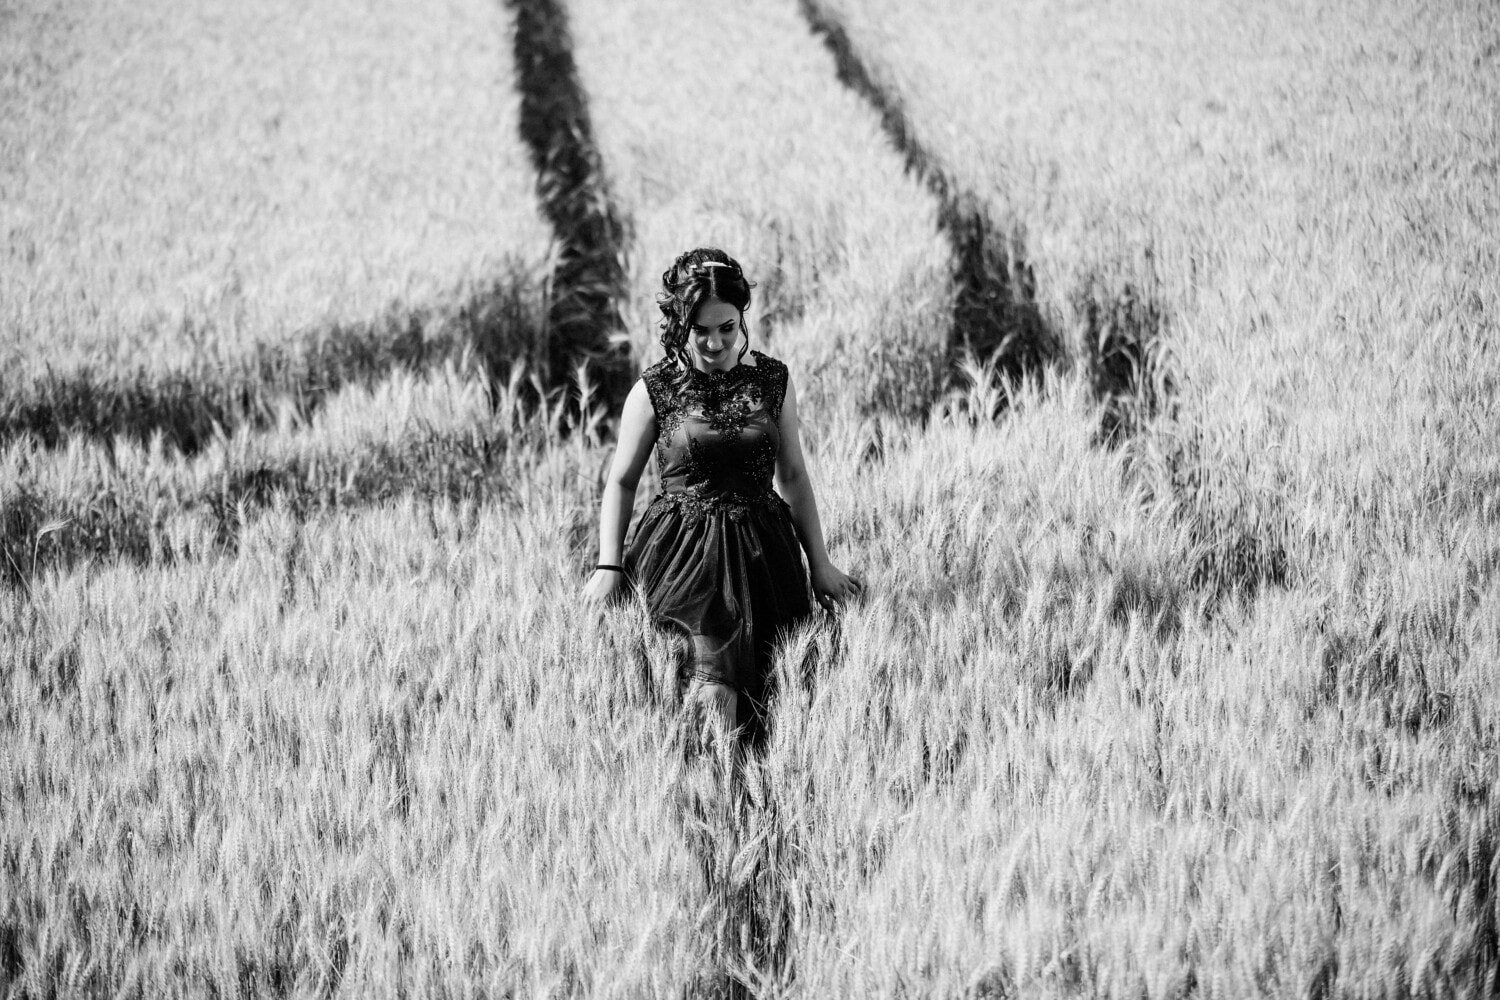 monochrome, wheatfield, pretty girl, walkway, woman, field, grass, nature, girl, outdoors